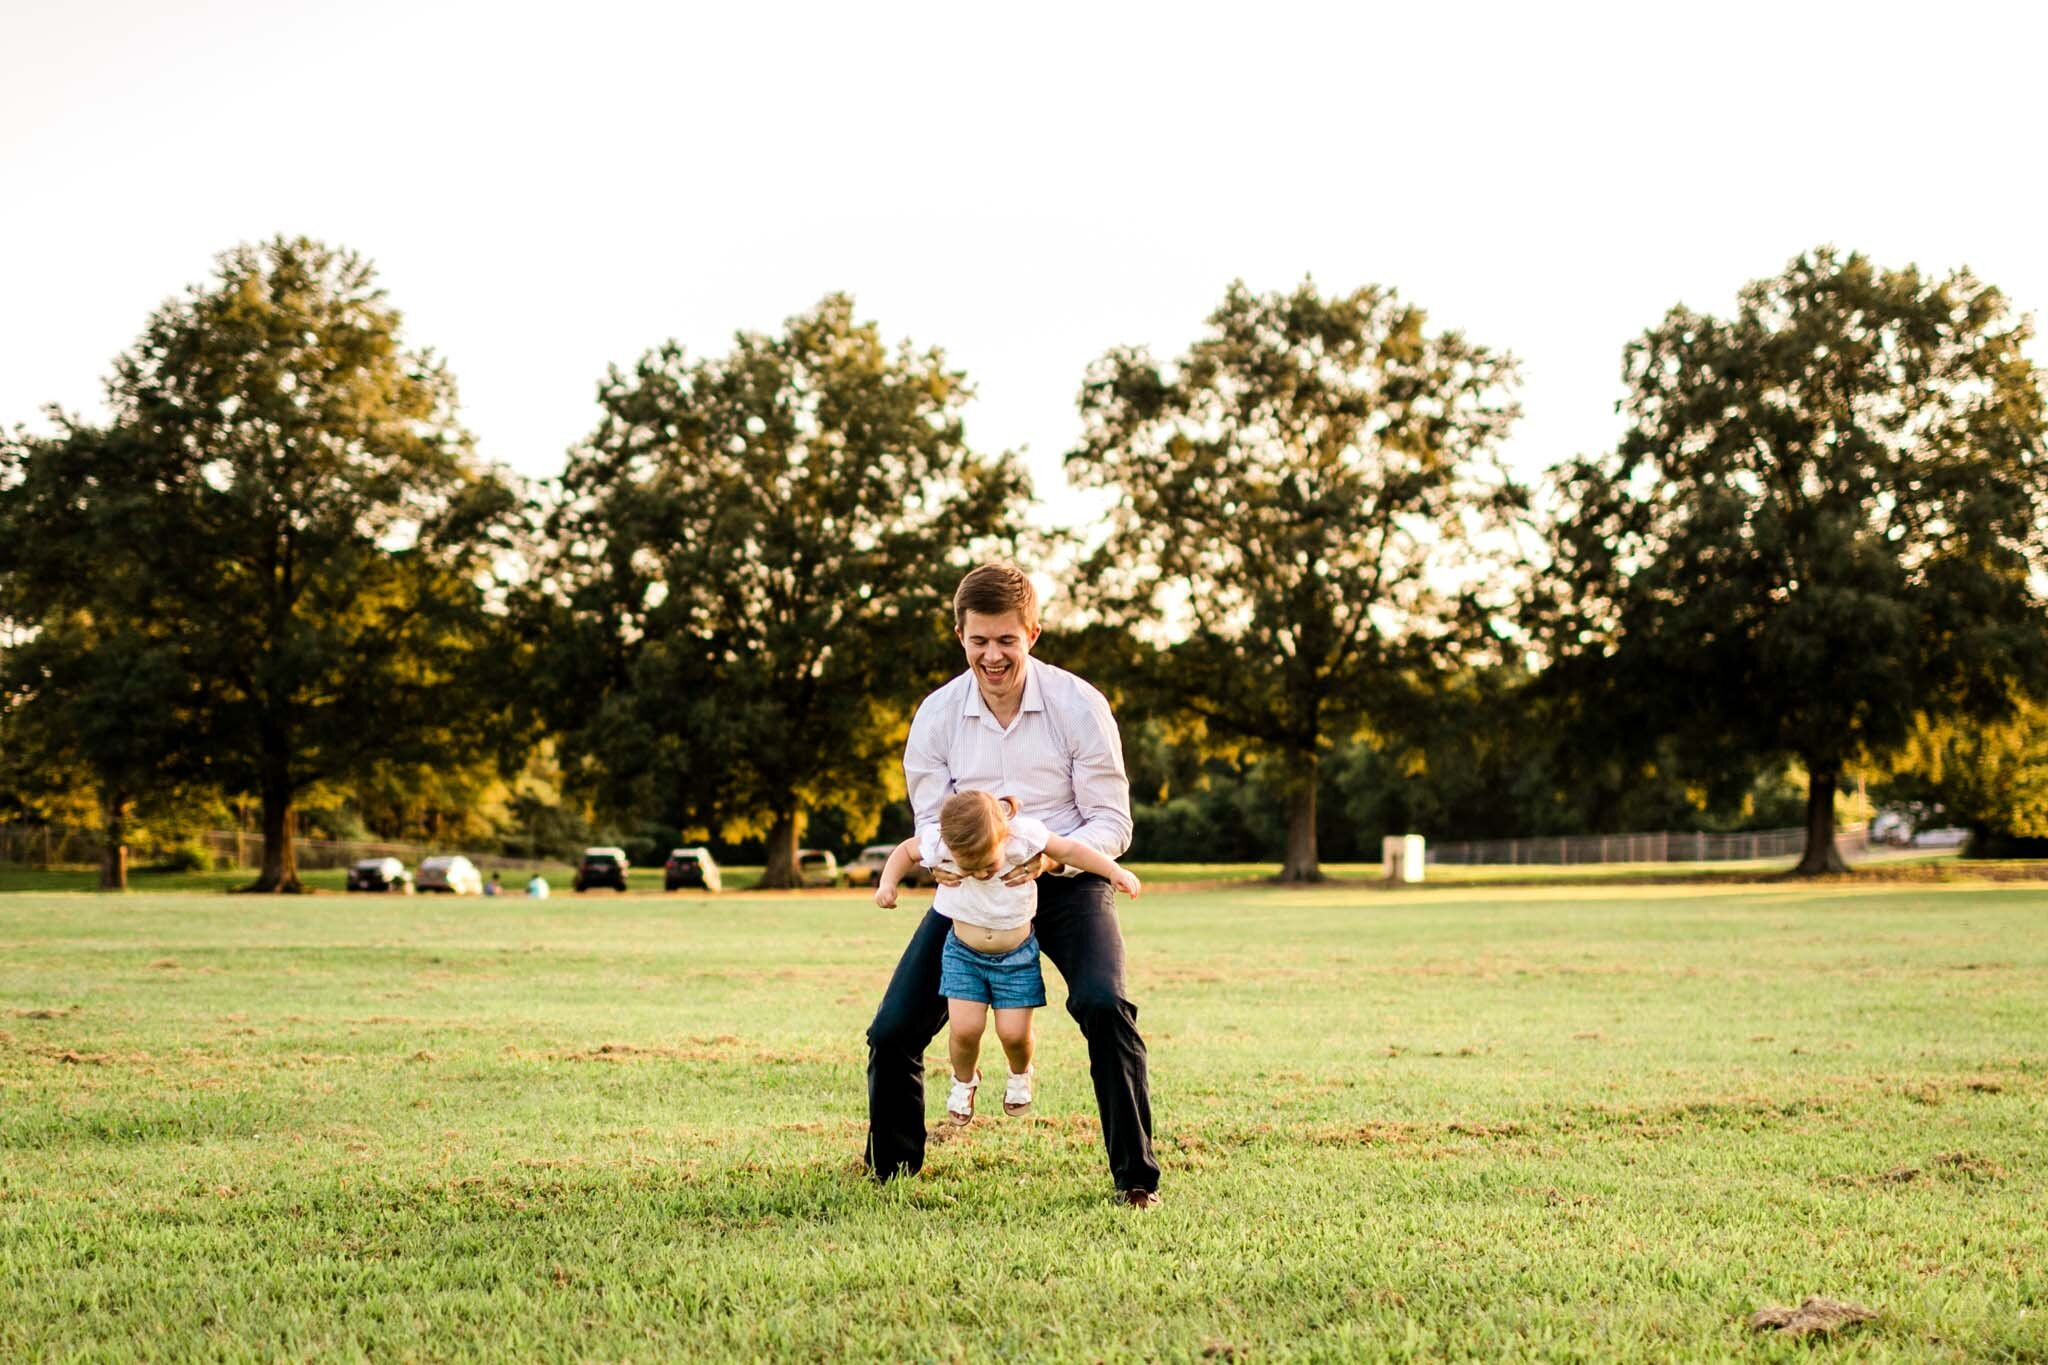 Raleigh Family Photography at Dix Park | By G. Lin Photography | Dad playing with daughter in open field